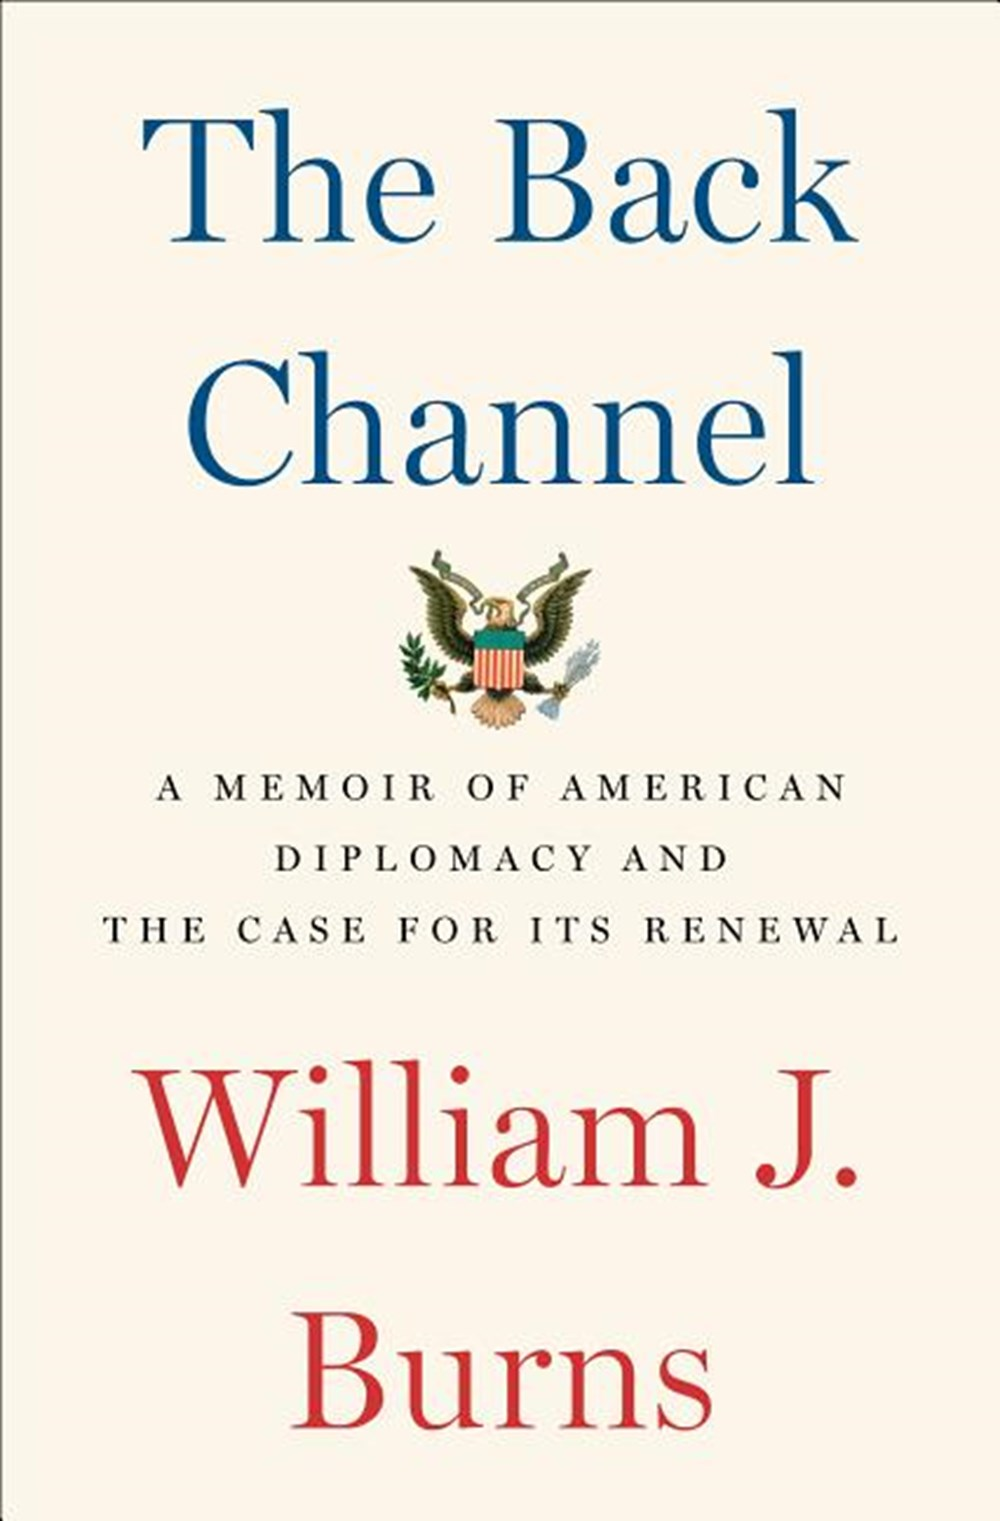 Back Channel A Memoir of American Diplomacy and the Case for Its Renewal